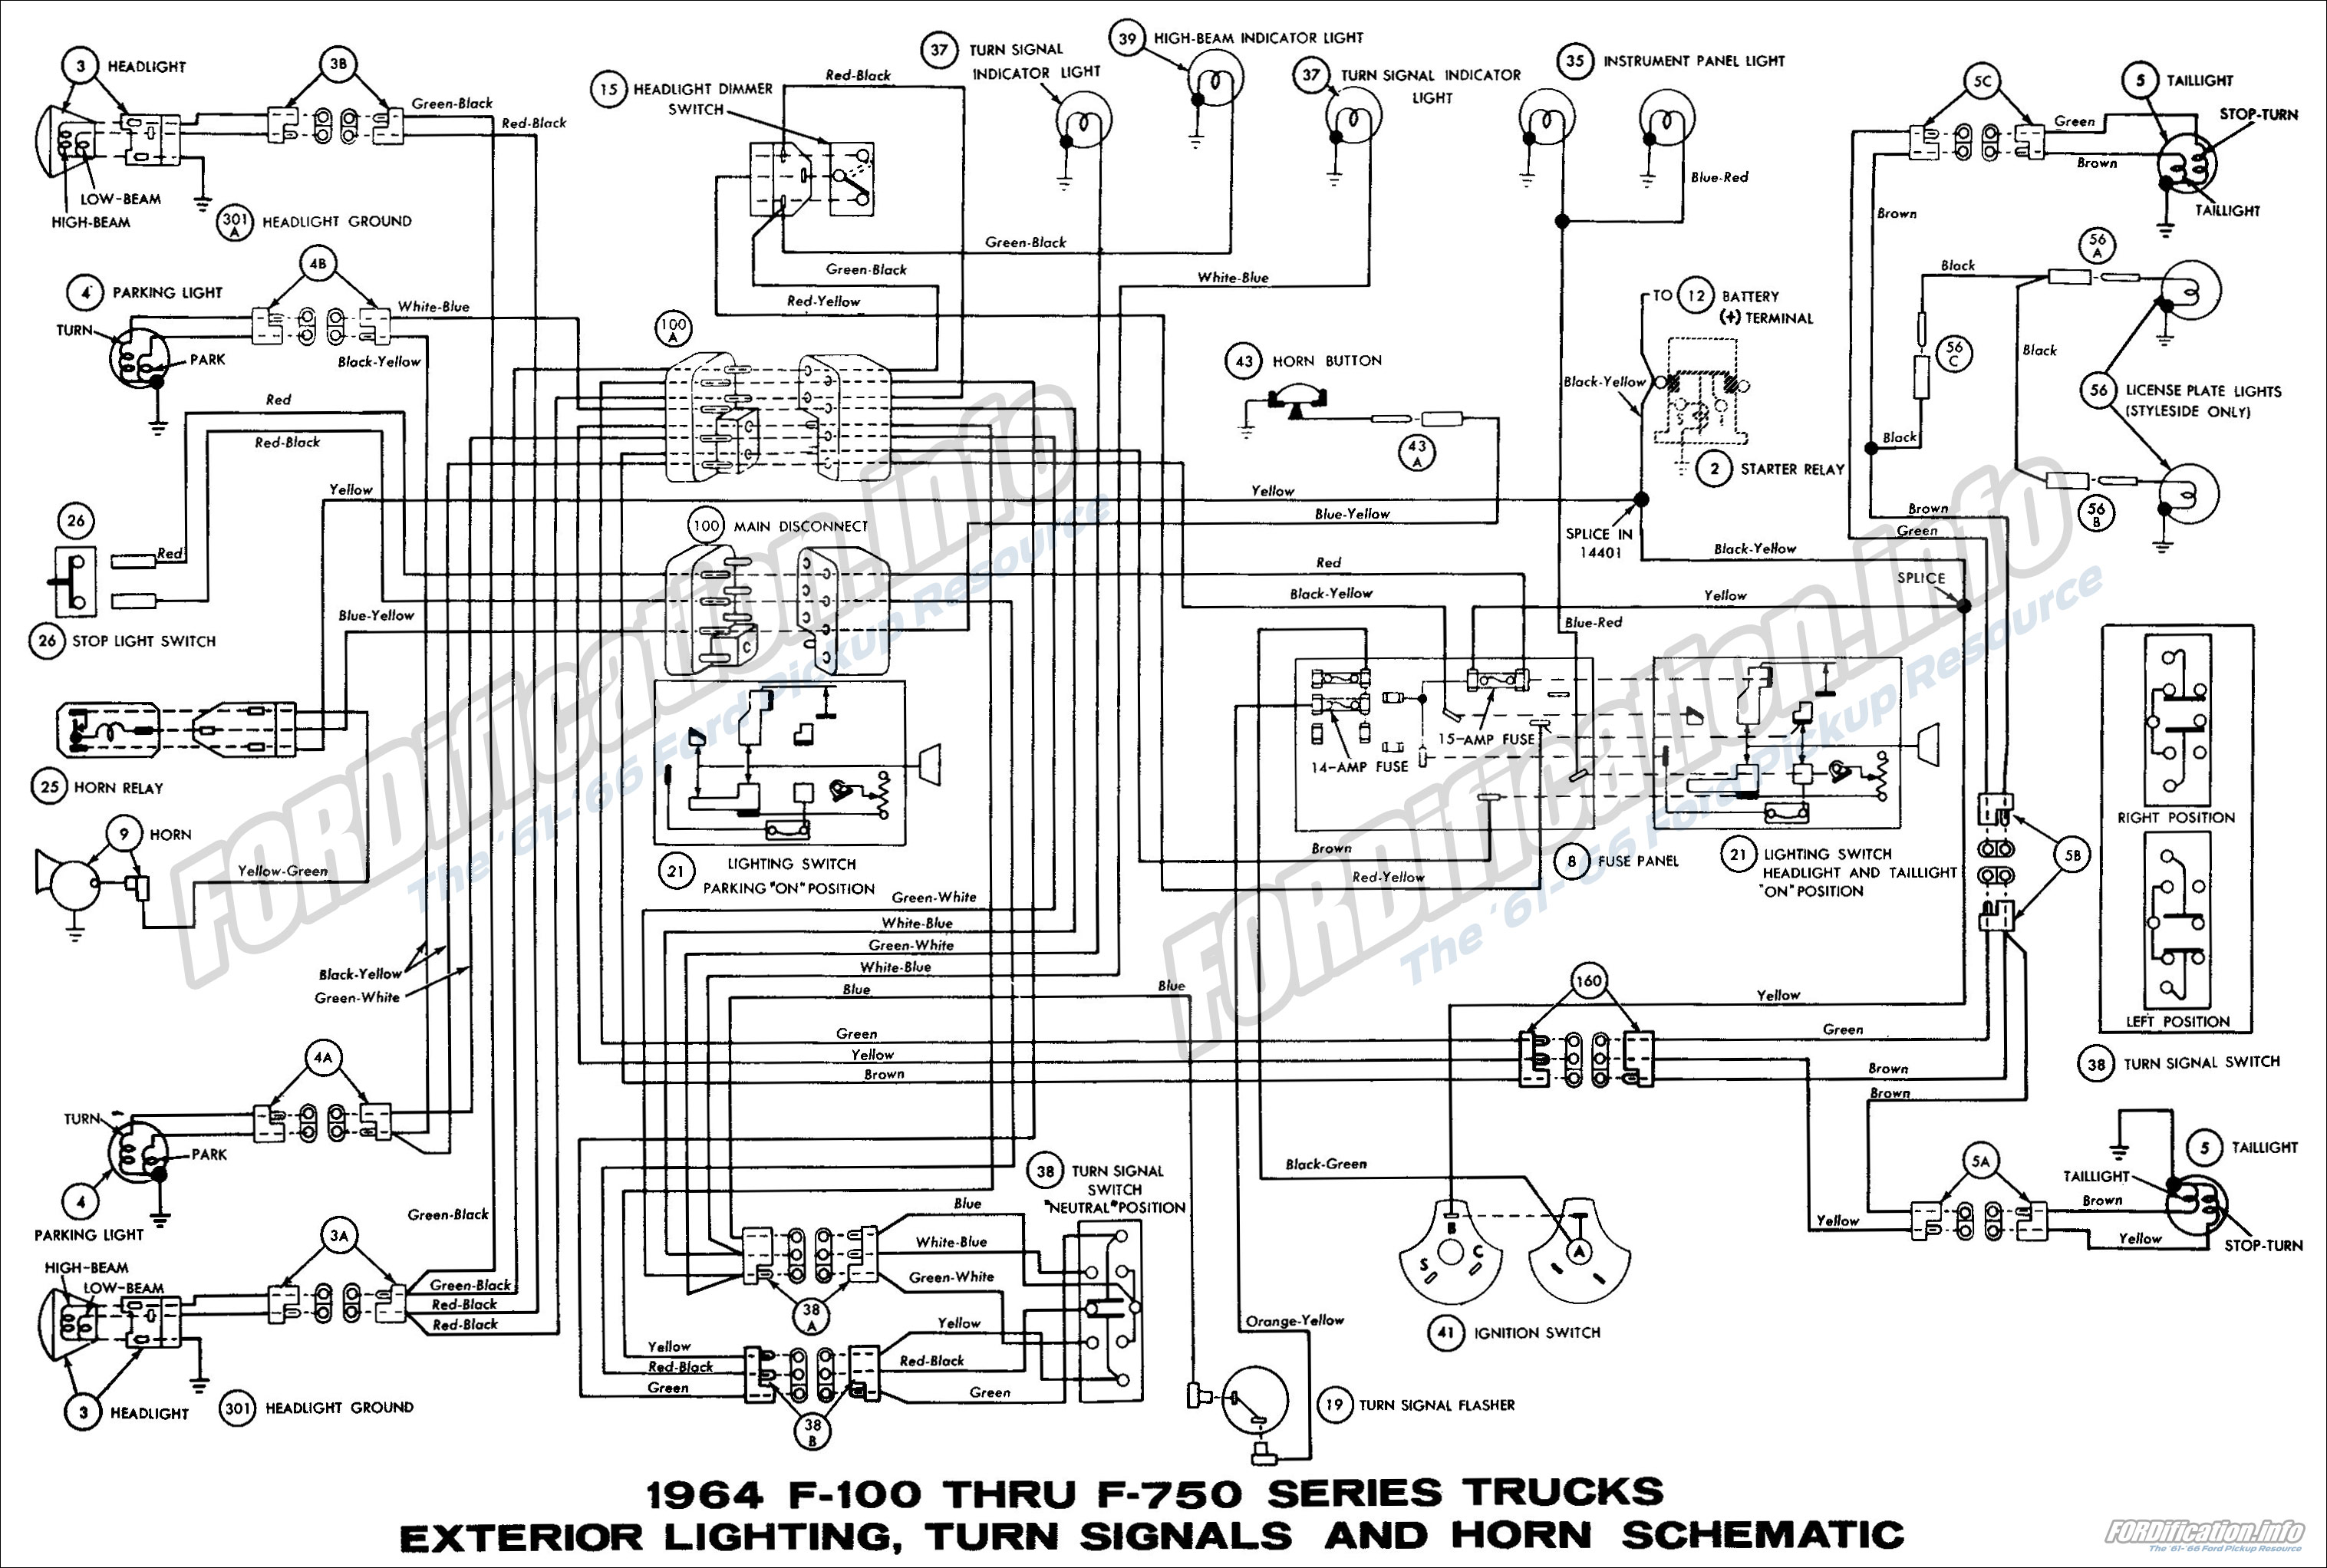 64 ford ignition wiring diagram 1964 ford truck wiring diagrams - fordification.info - the ...